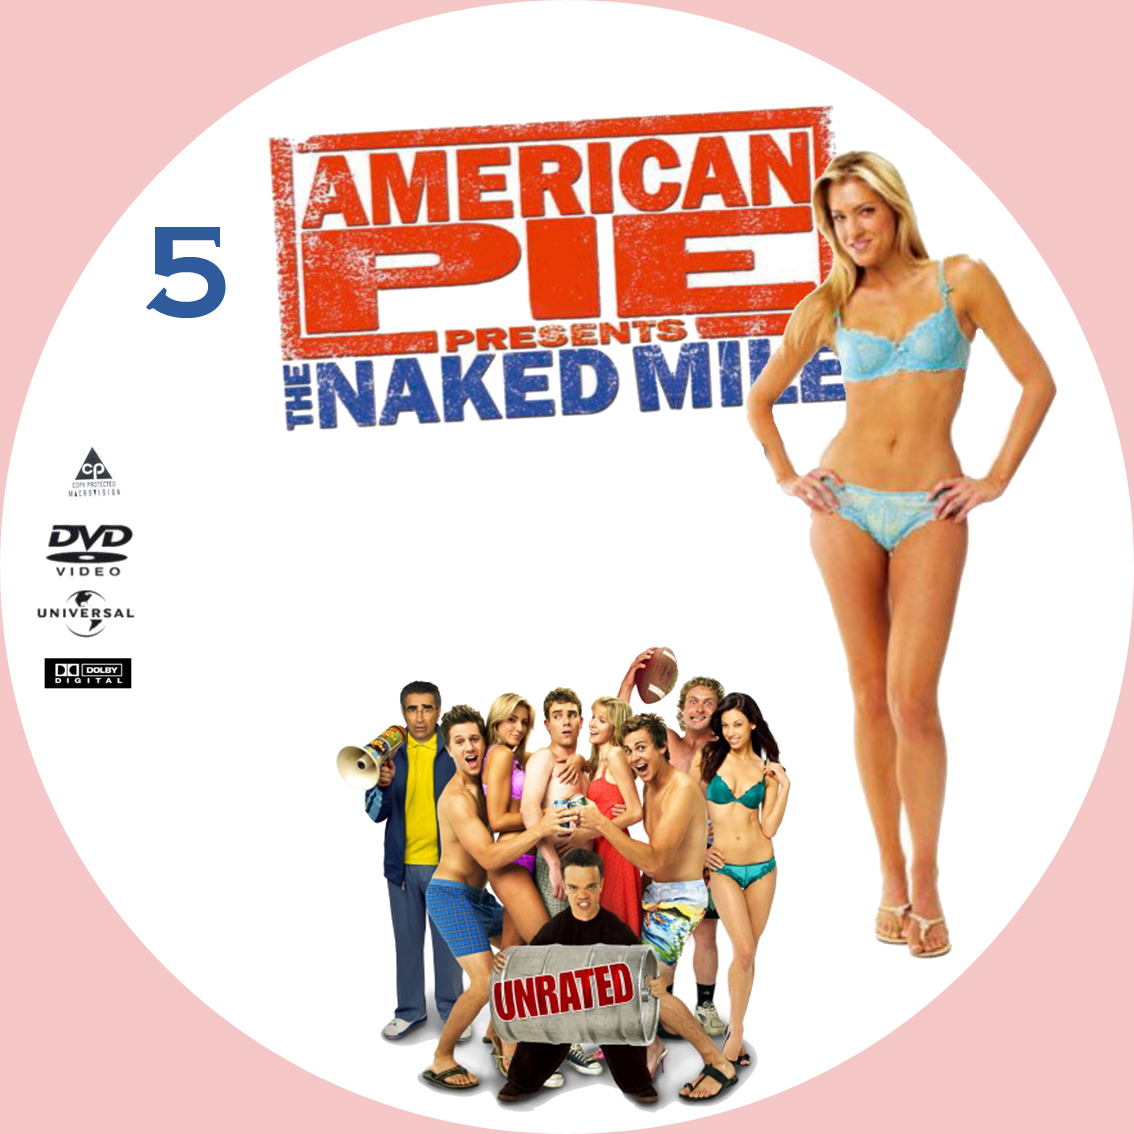 American dvd mile naked pie